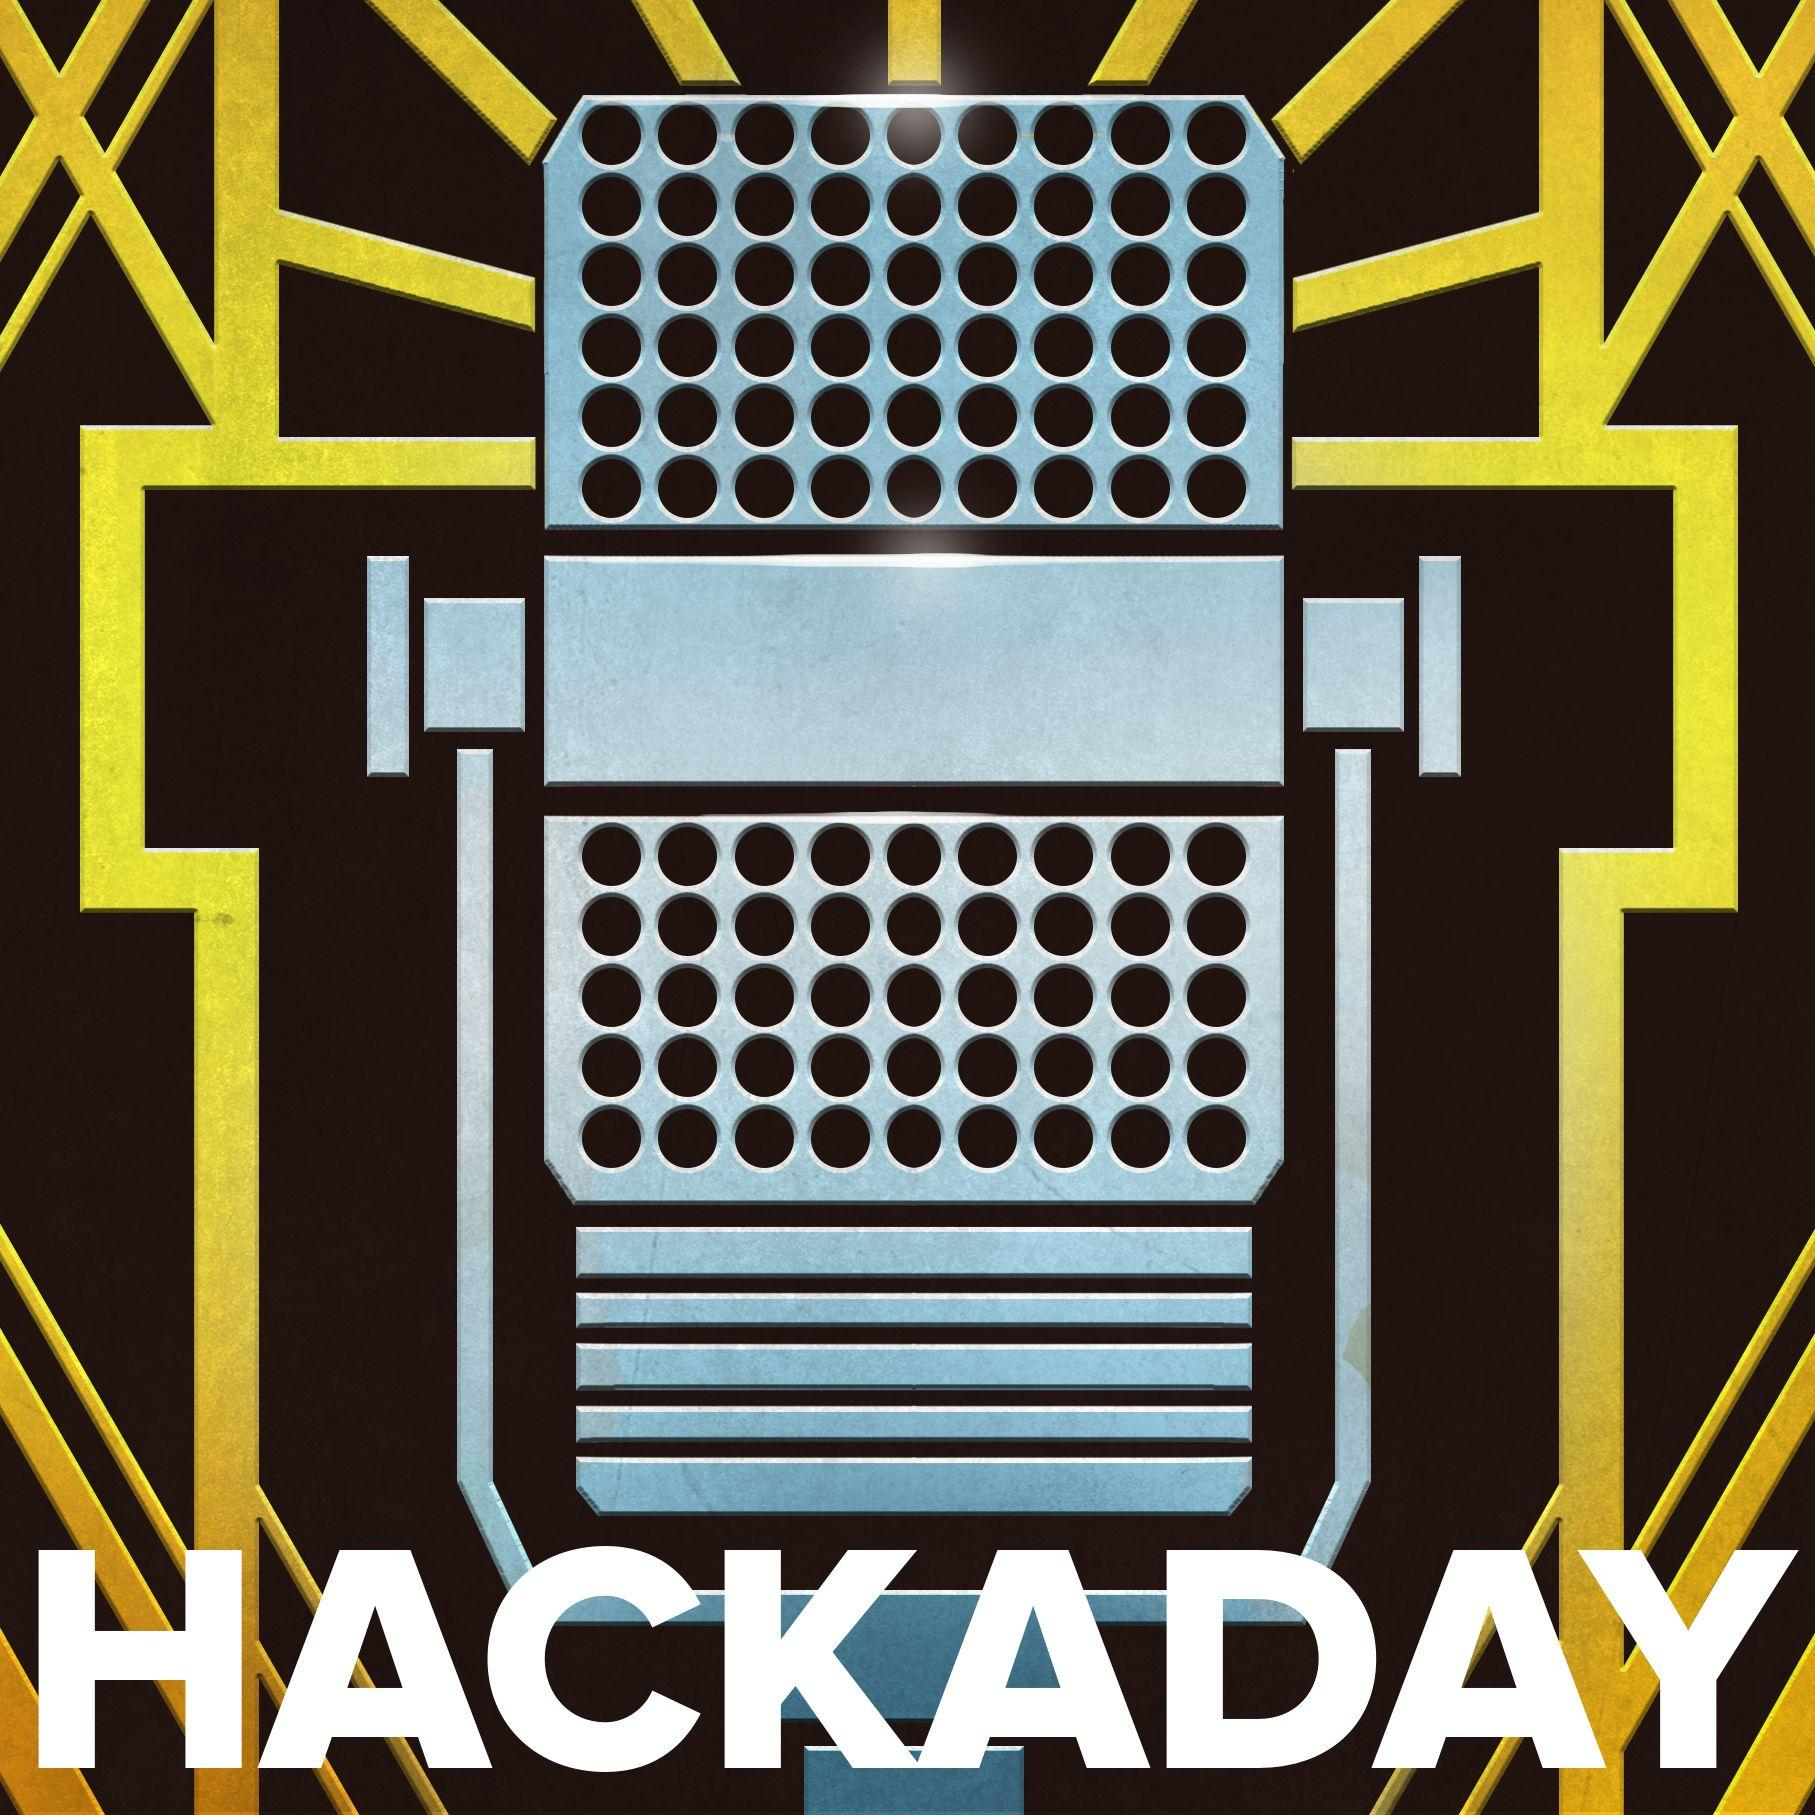 Hackaday Podcast Ep095: Booting FreeDOS from a Vinyl Record, Floating on Mushrooms, and Tunneling Through a Living Room